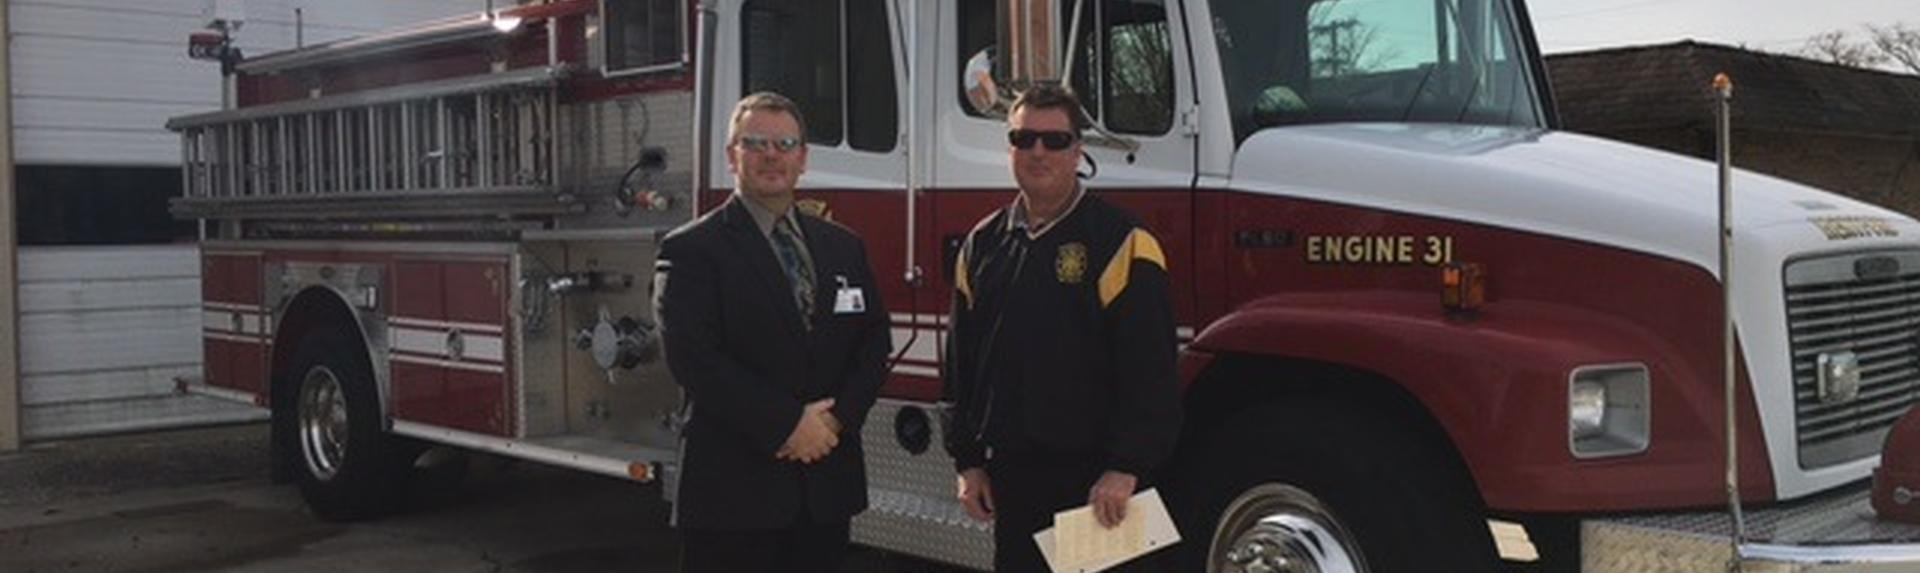 fire-truck-cheeseman-and-cartwright.jpg